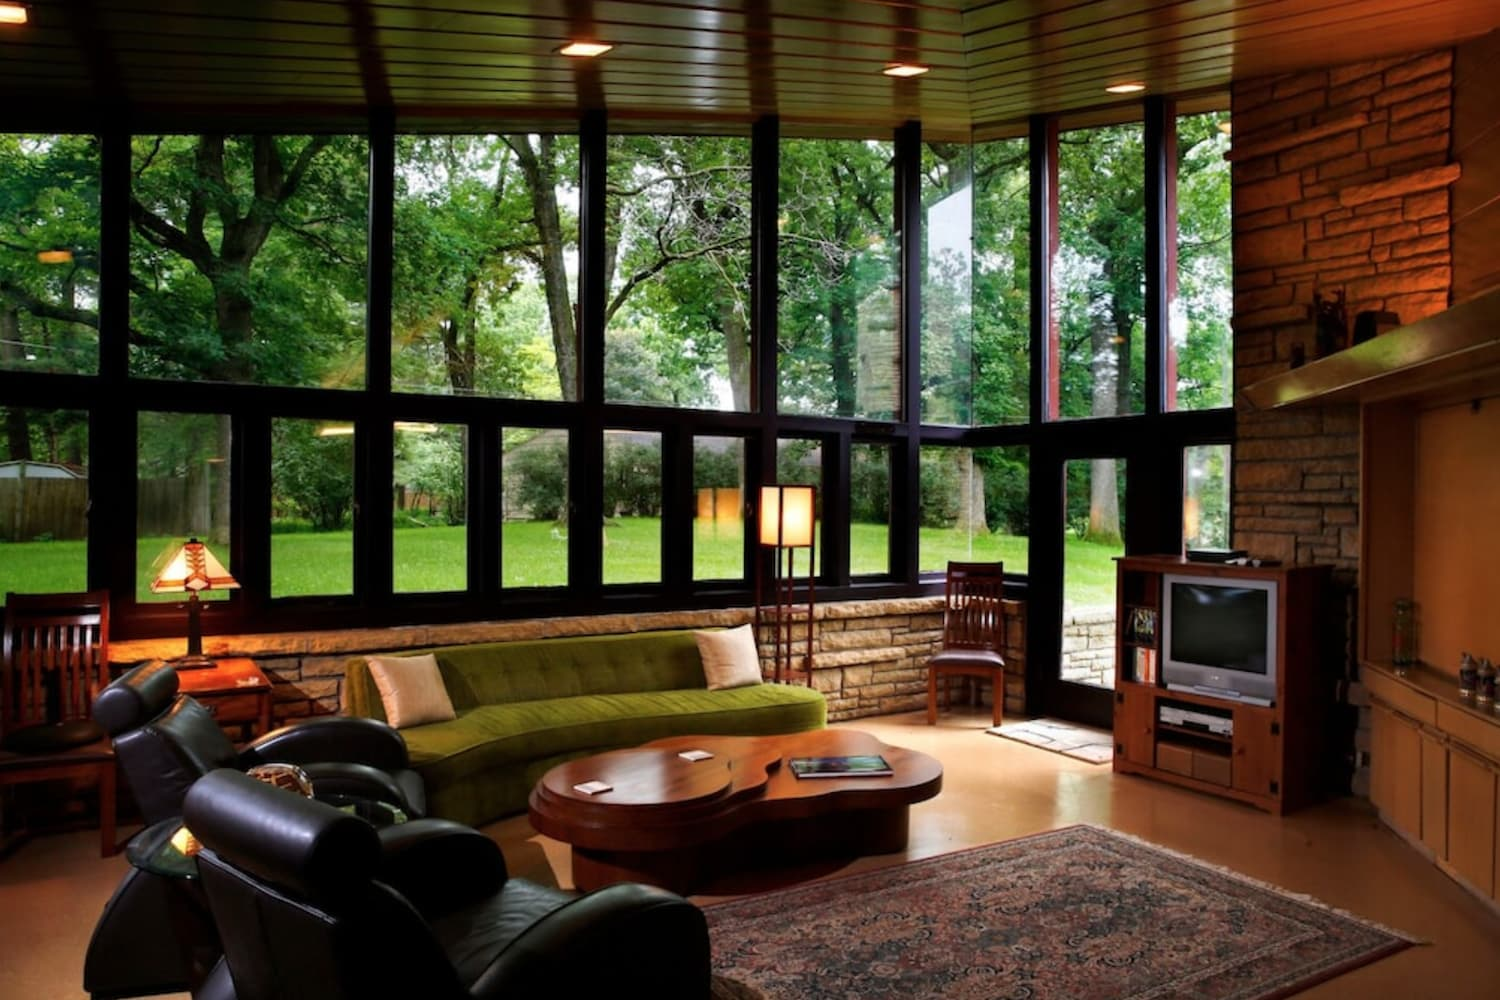 Attention, Design Lovers: You Could Book Frank Lloyd Wright Homes